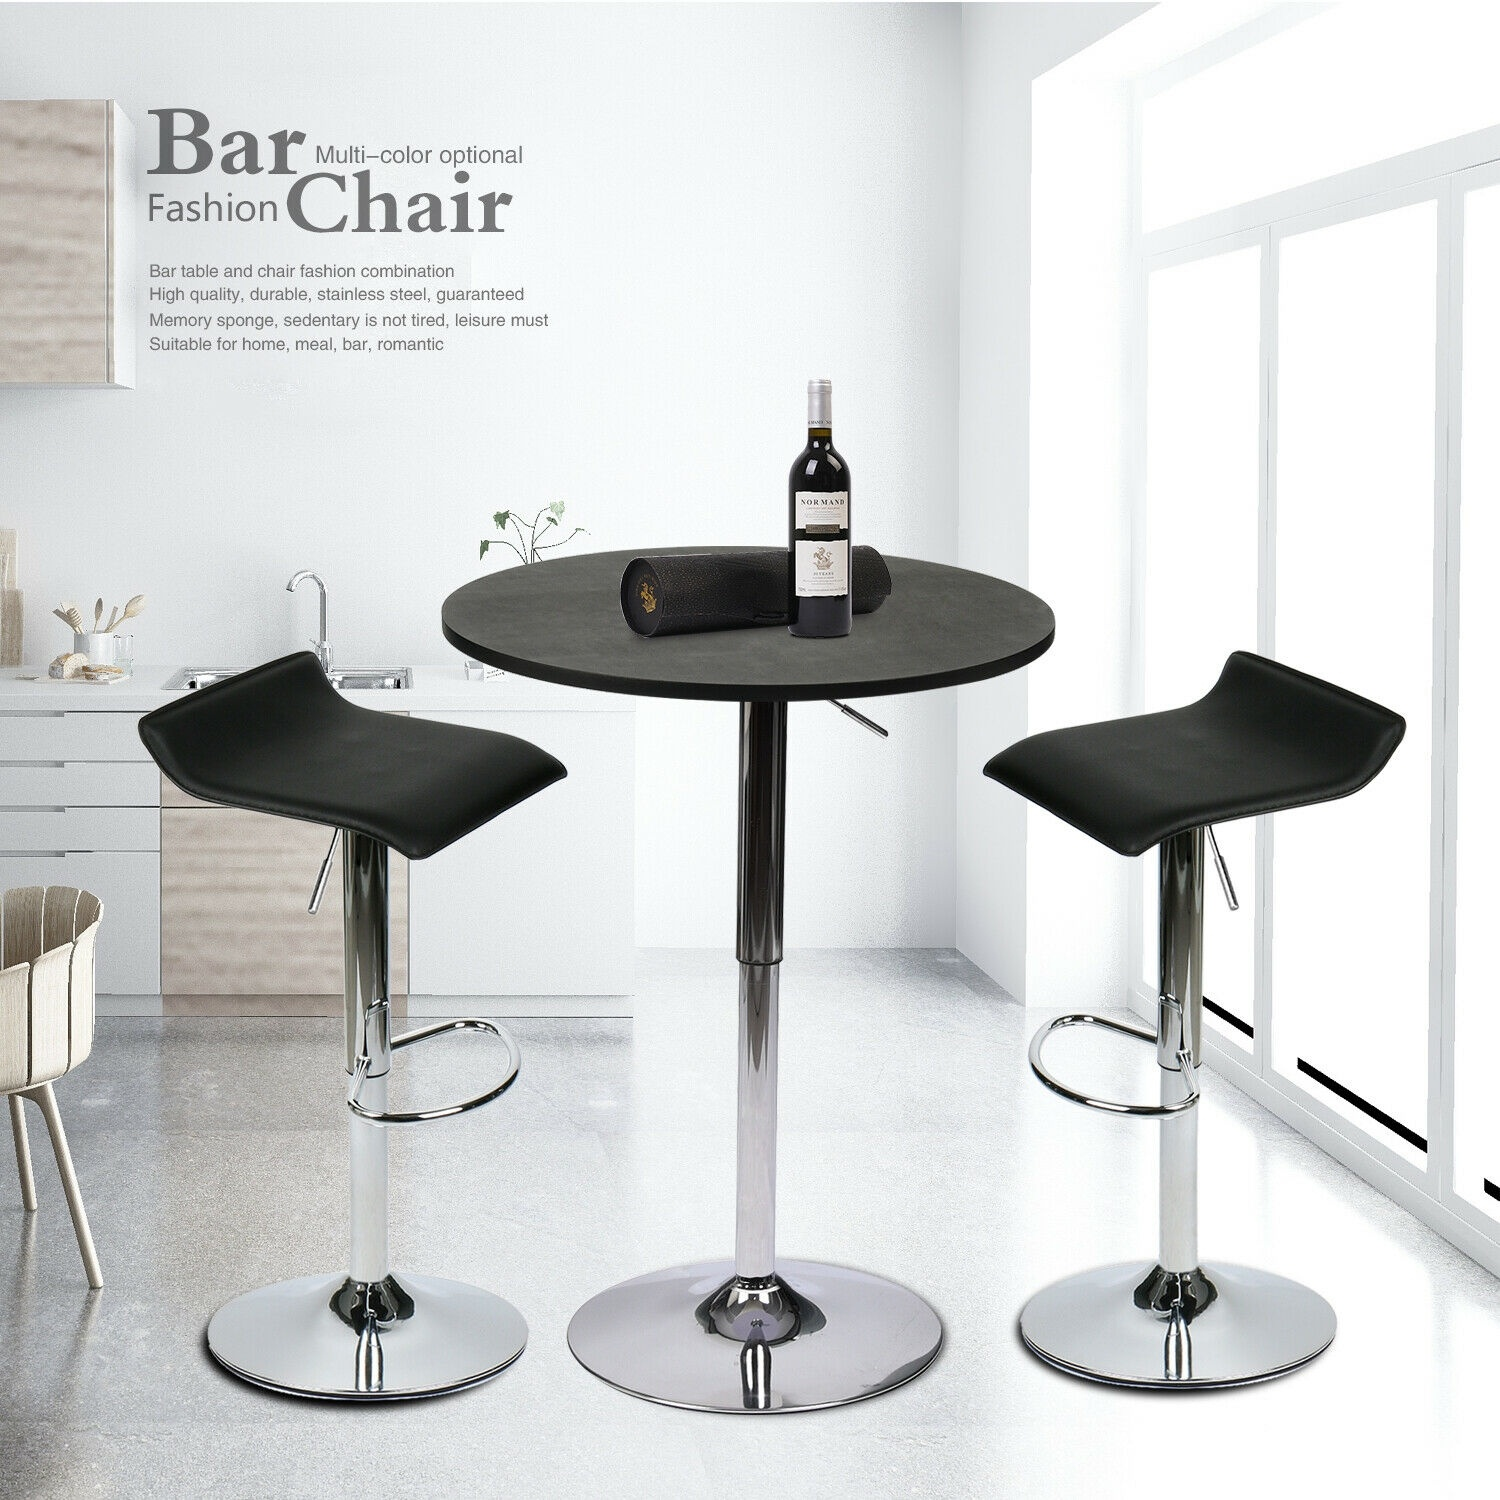 3 Piece Bar Table Stools Set Counter Adjustable Swivel Kitchen Dining Furniture